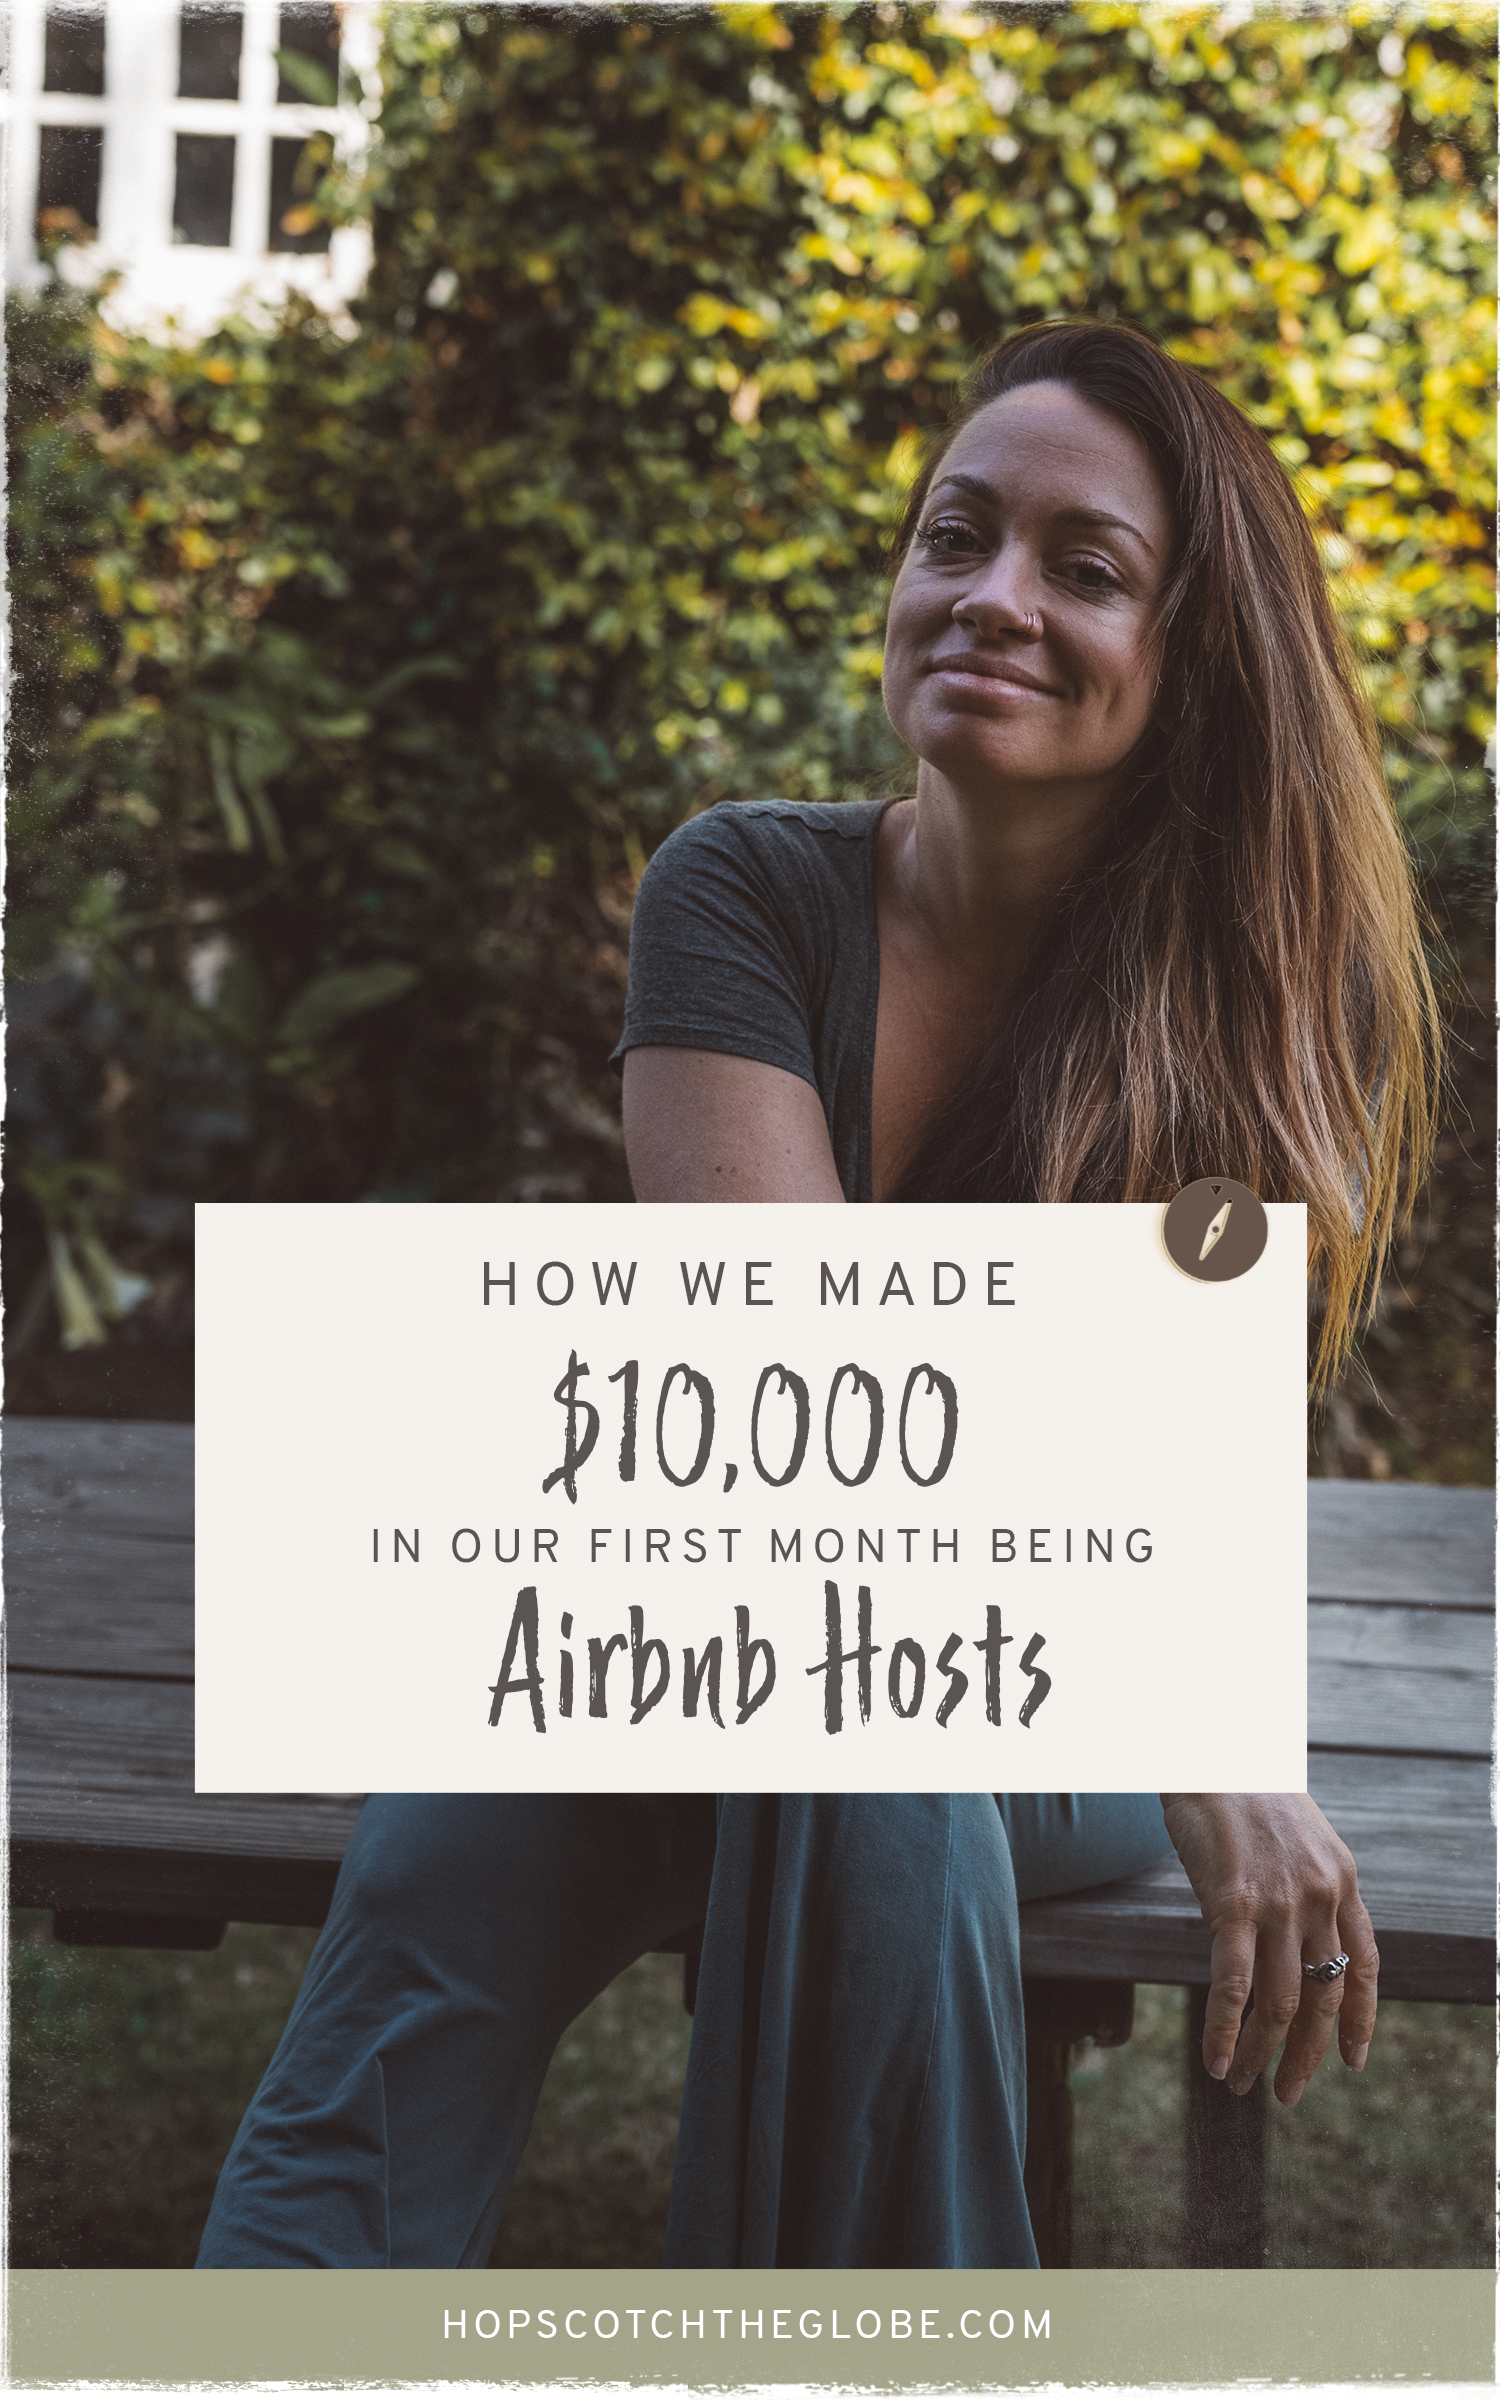 How We Made $10,000 in Our First Month of Being an Airbnb Host